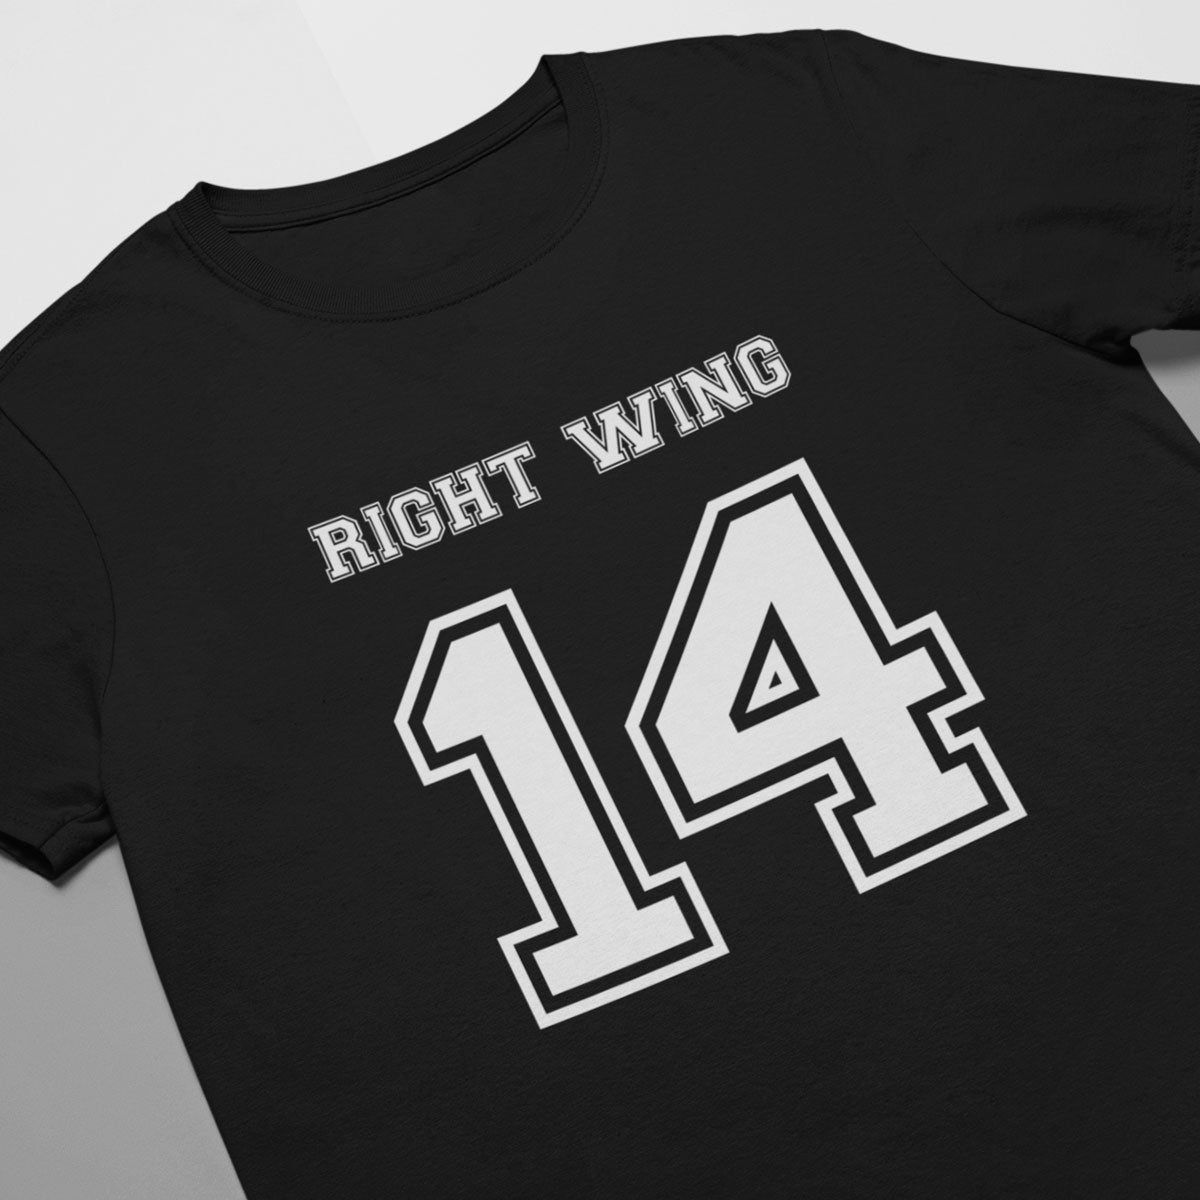 Right Wing Number 14 Rugby Tee - First XV rugbystuff.com